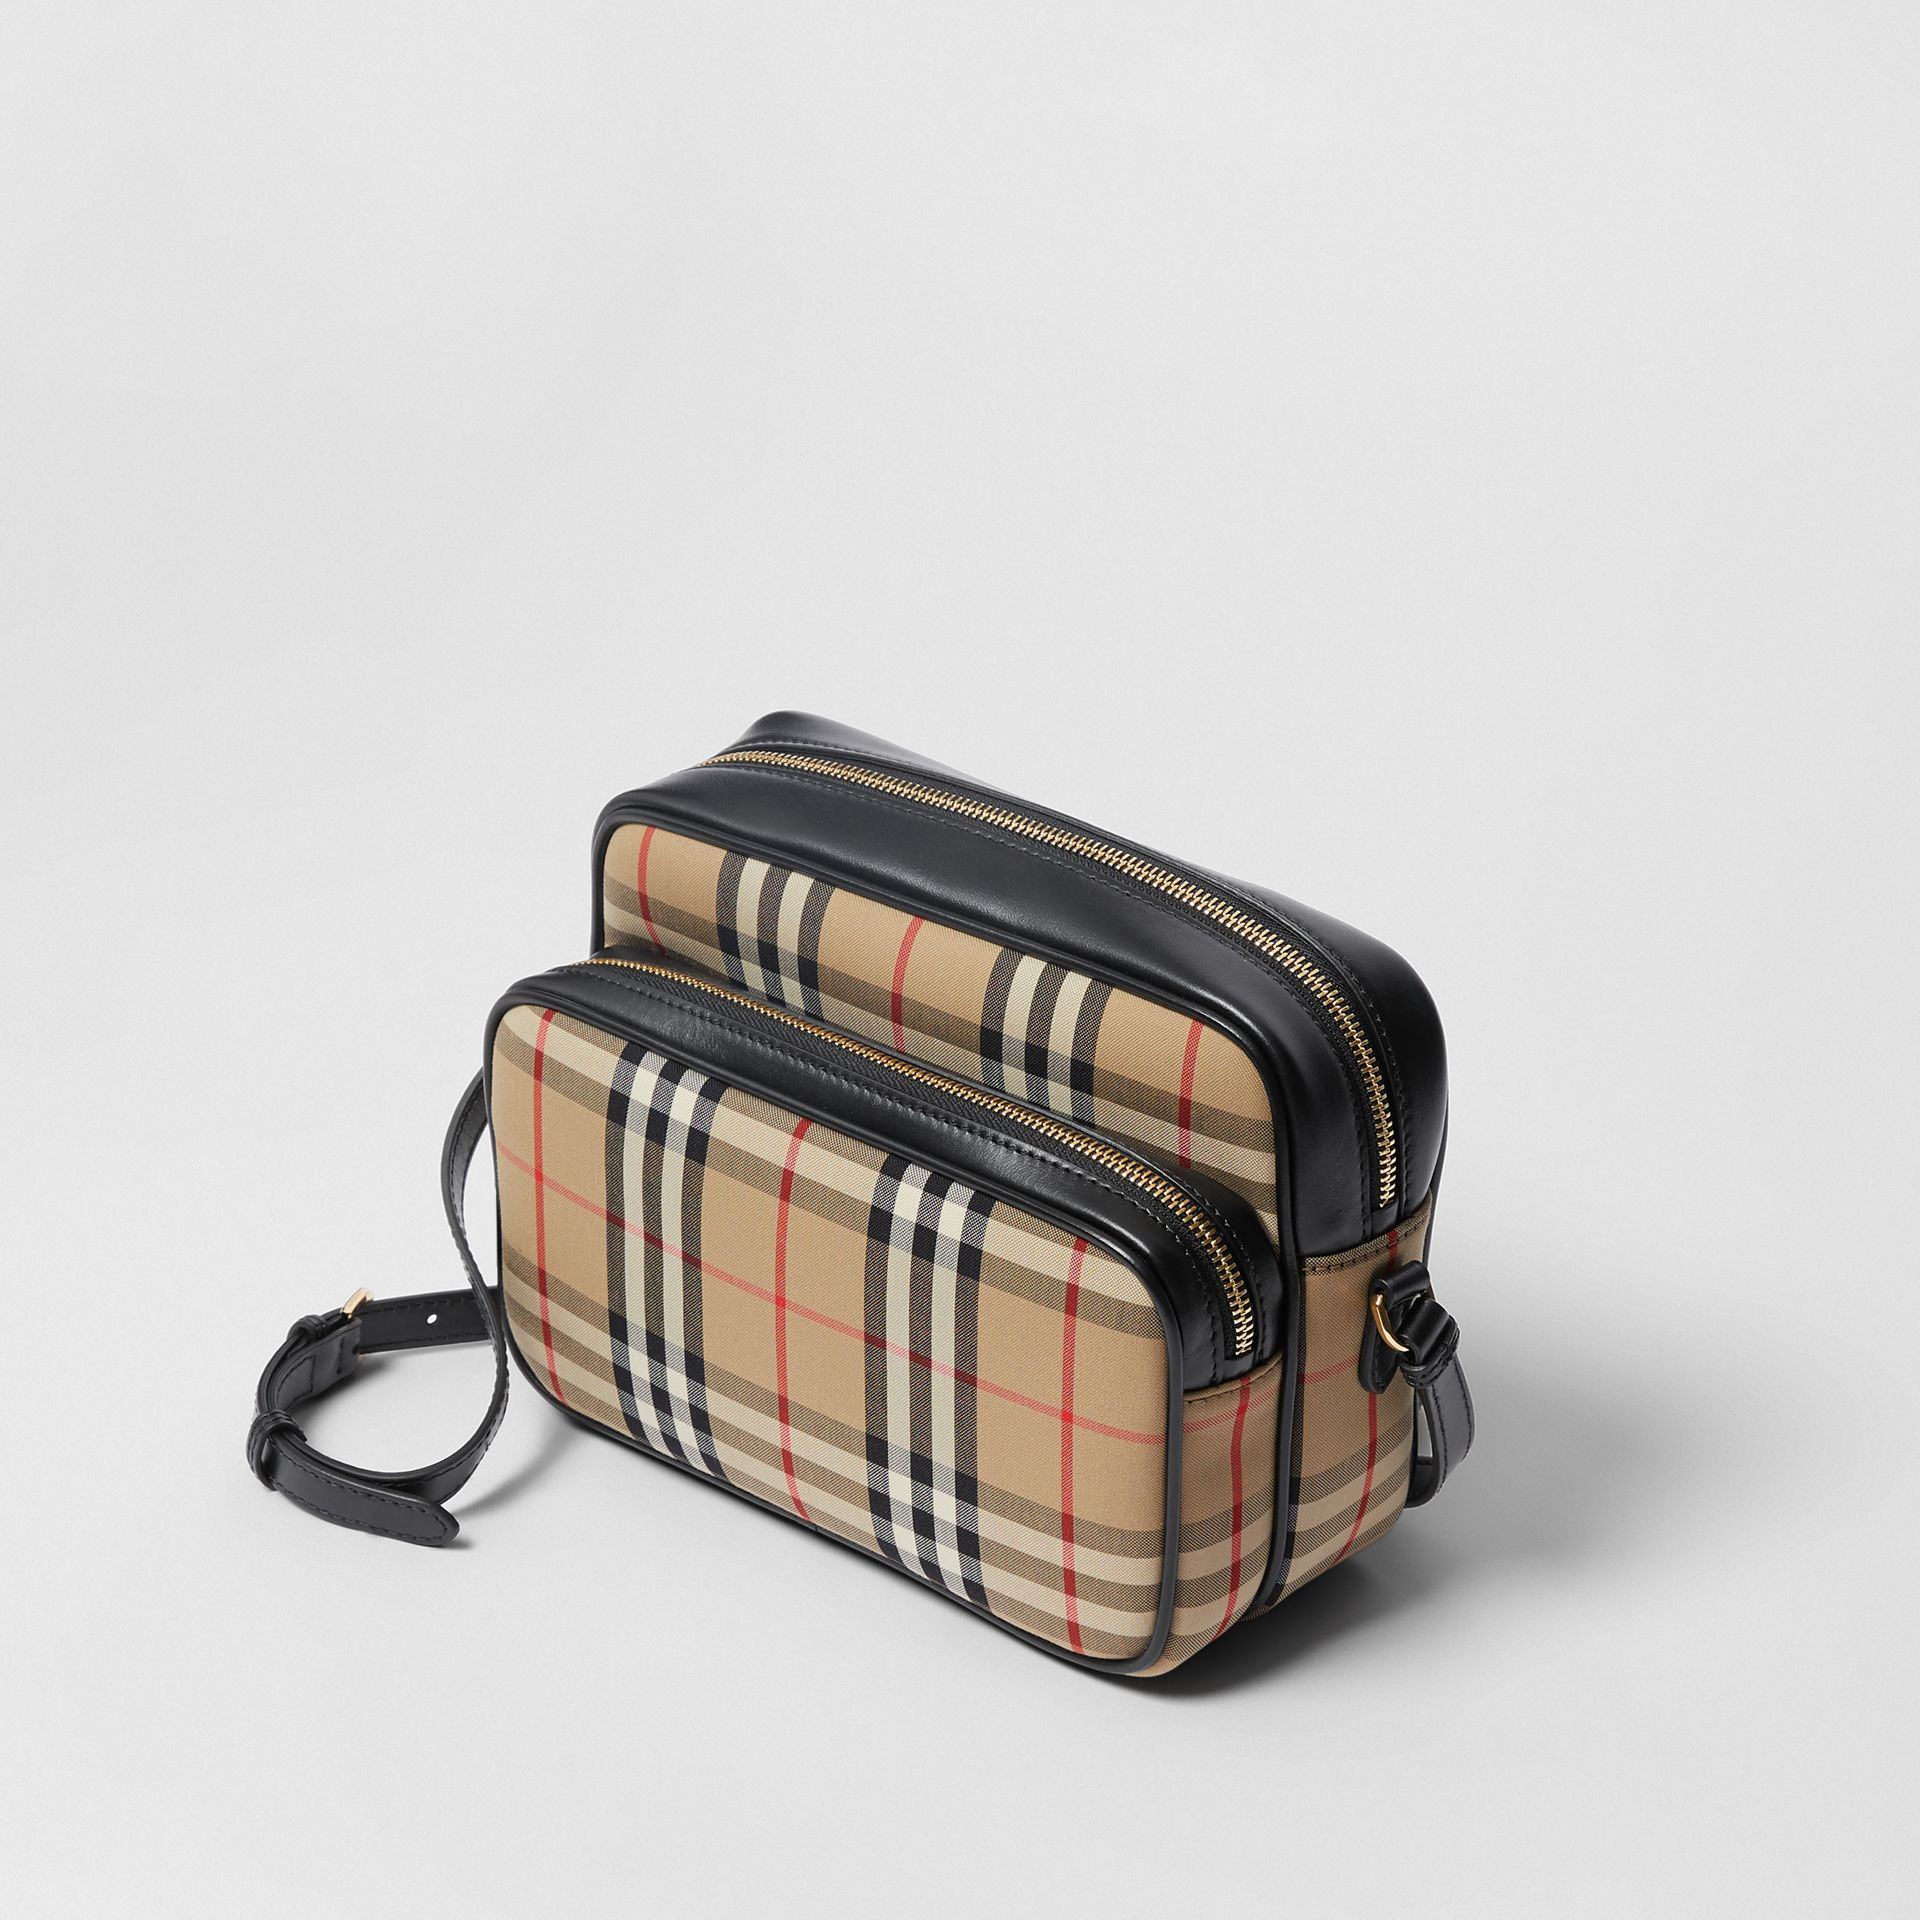 Medium Vintage Check and Leather Camera Bag in Archive Beige - Women | Burberry Hong Kong S.A.R - gallery image 3